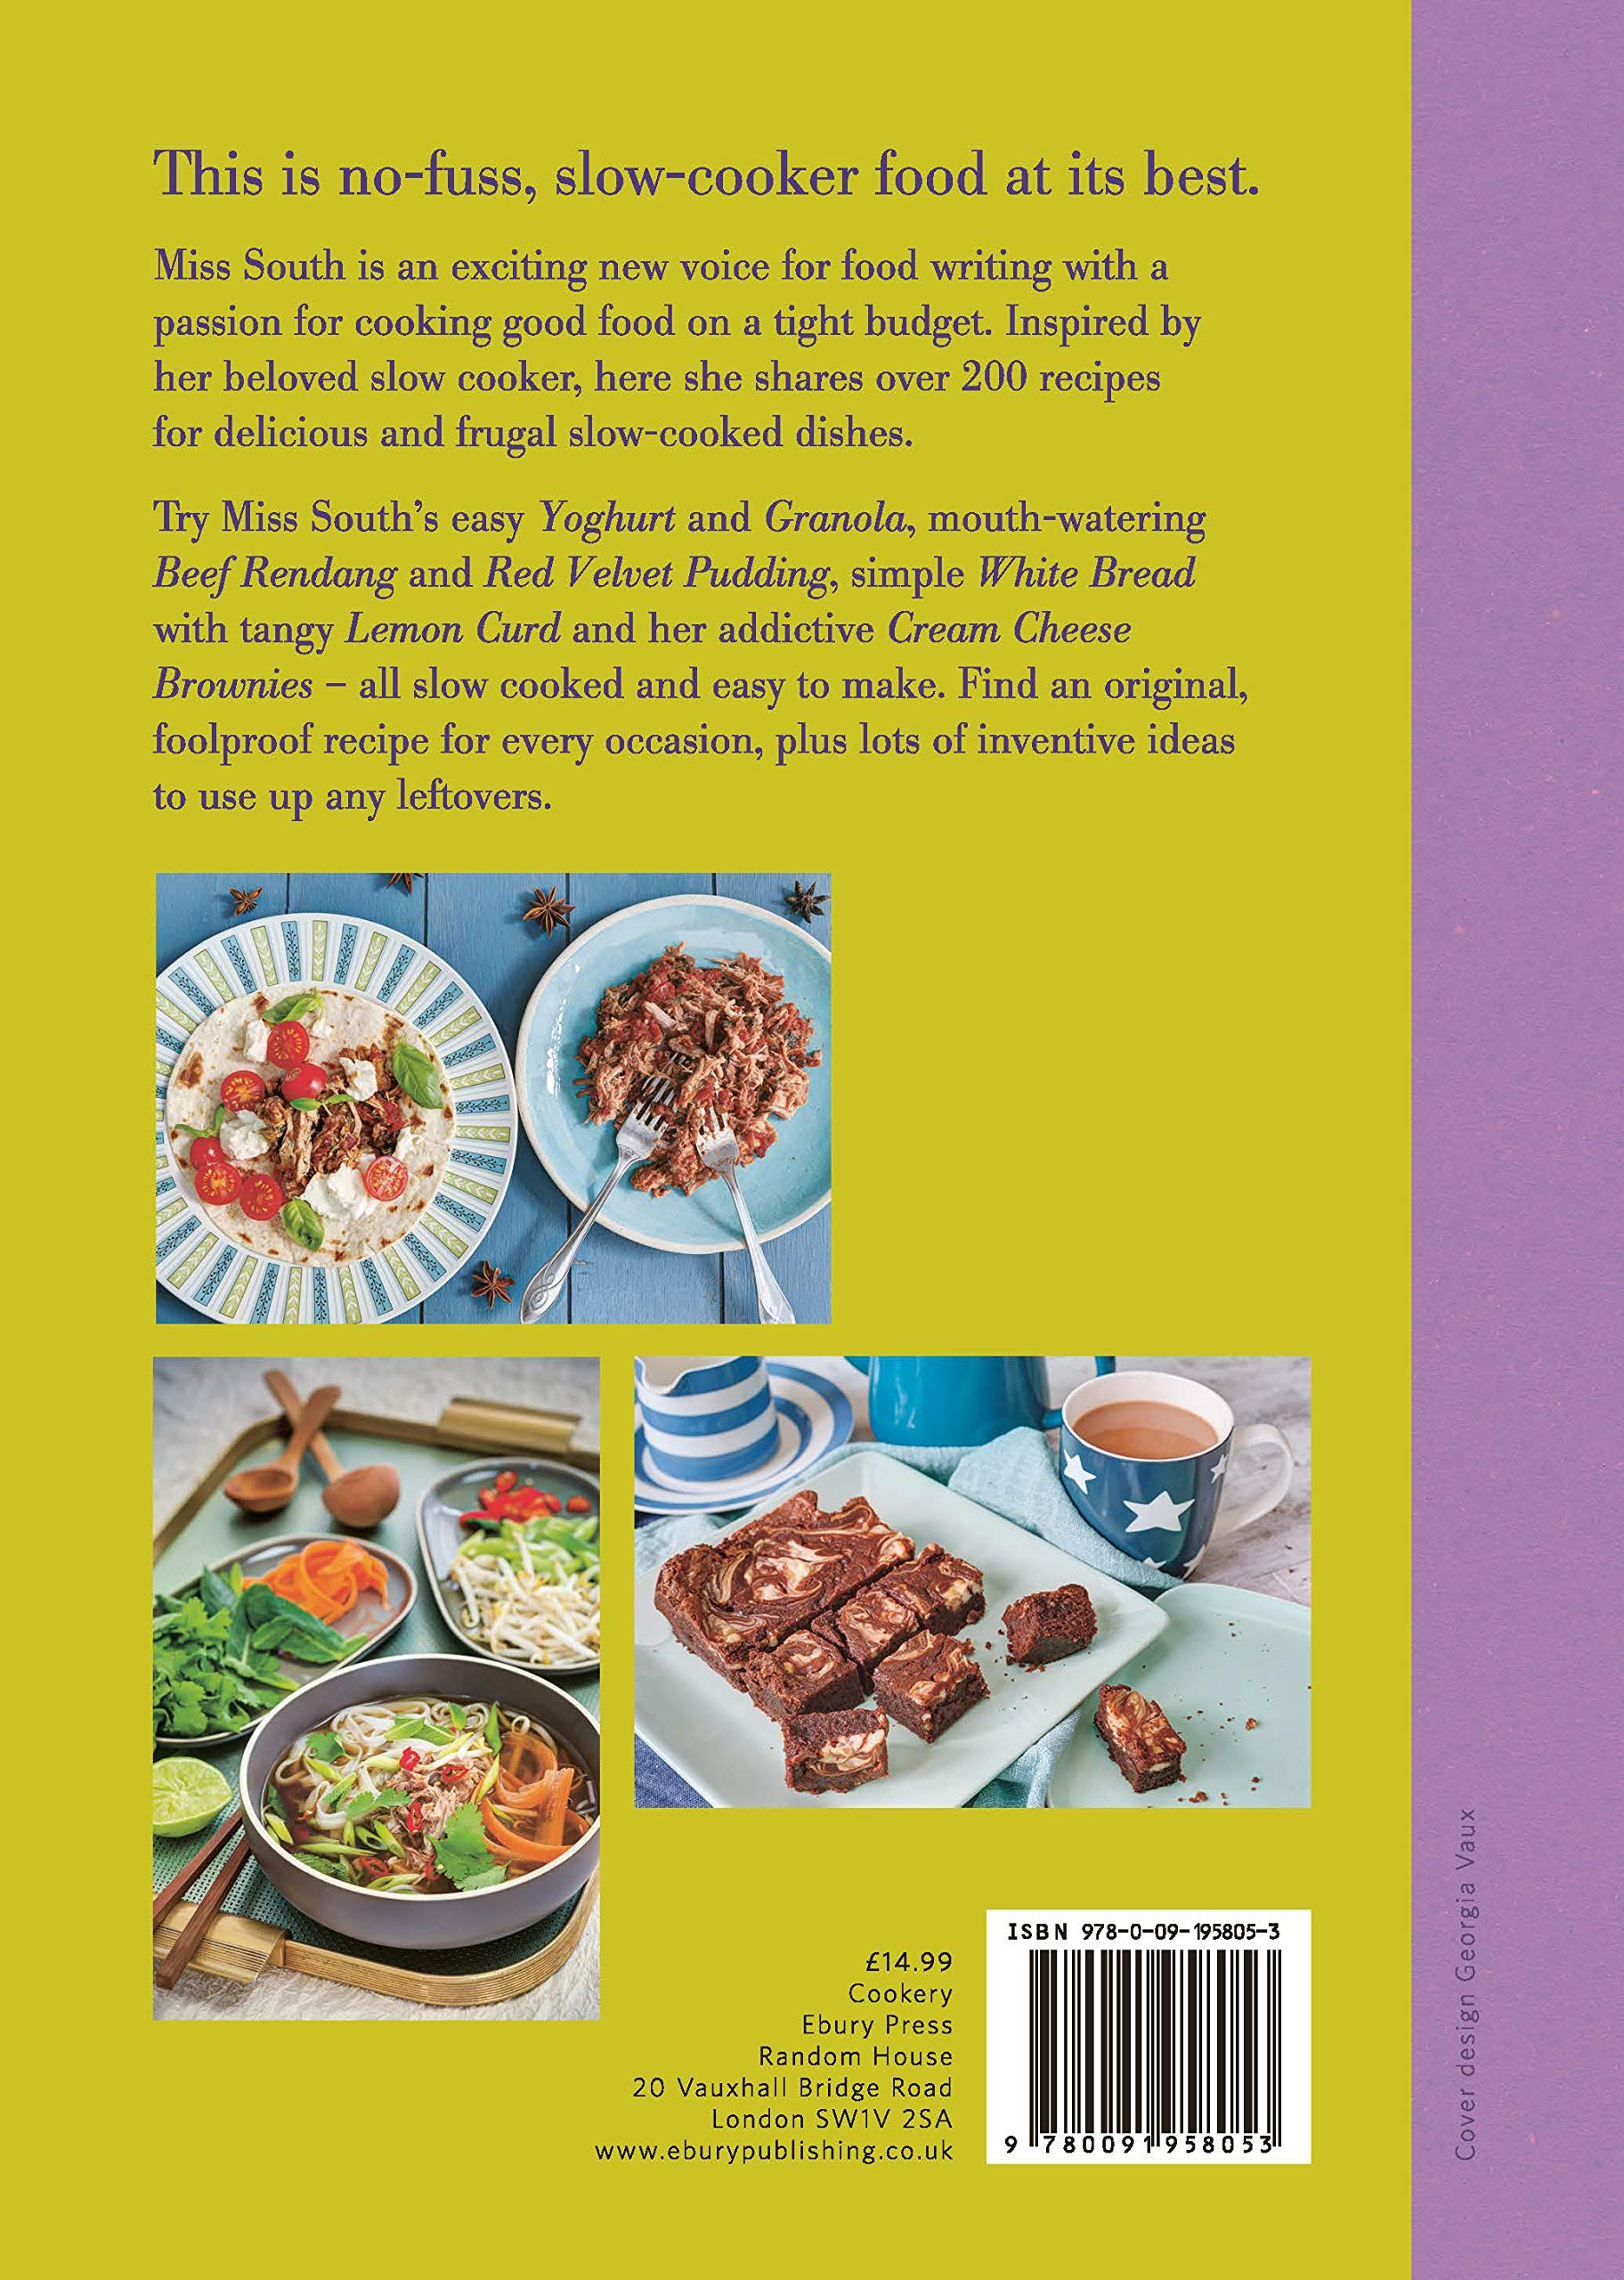 Slow Cooked: Miss Souths Easy, Thrifty and Delicious Recipes for Slow Cookers: Miss South: 9780091958053: Amazon.com: Books